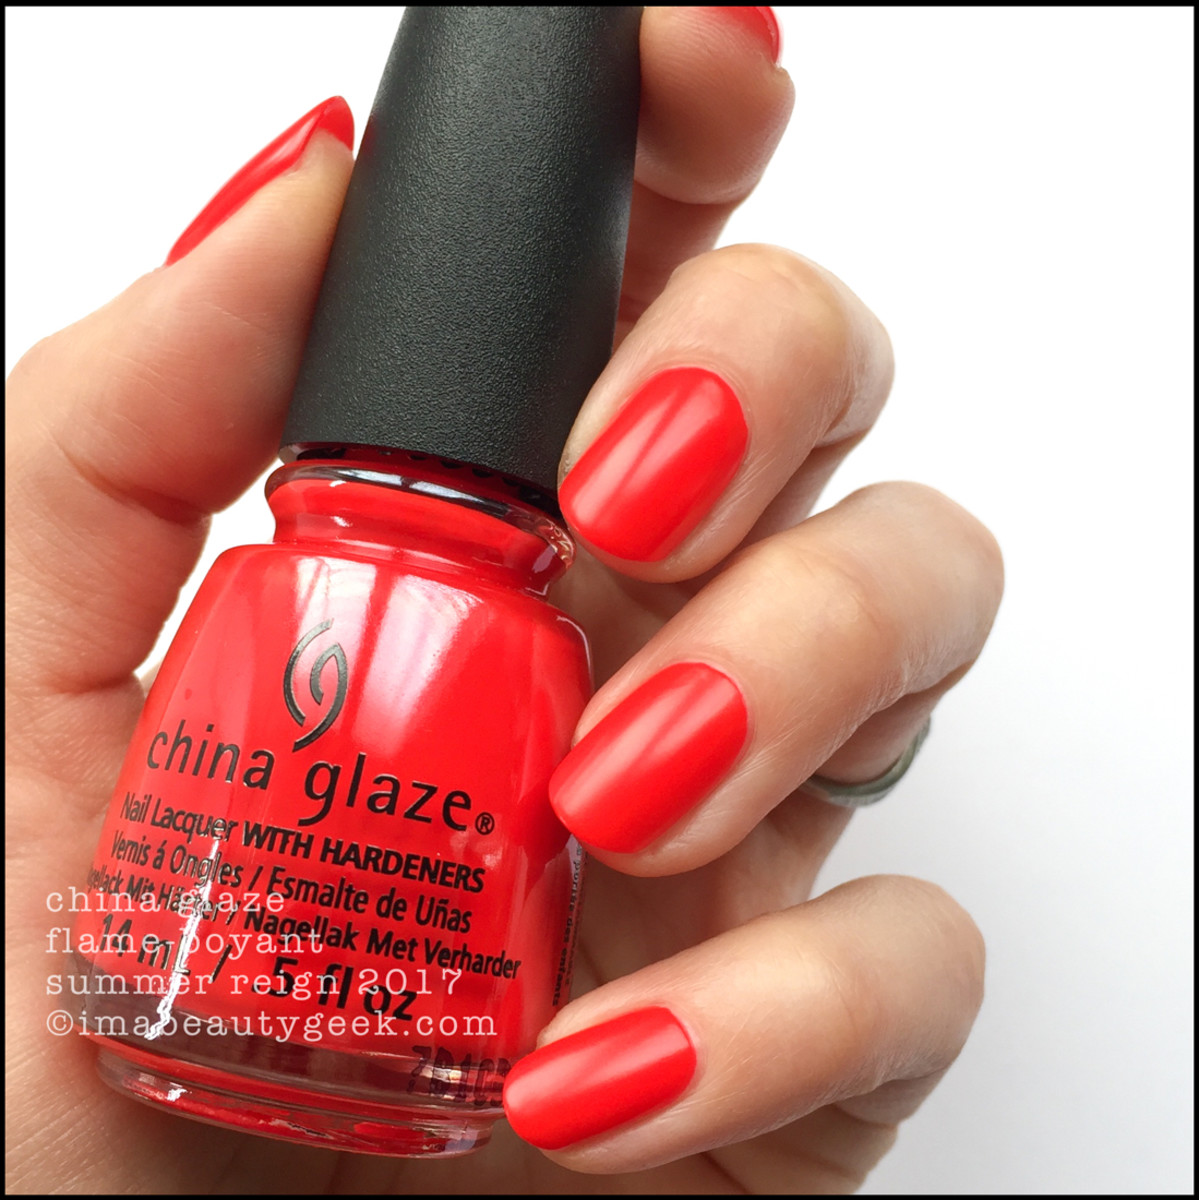 China Glaze FlameBoyant no top coat